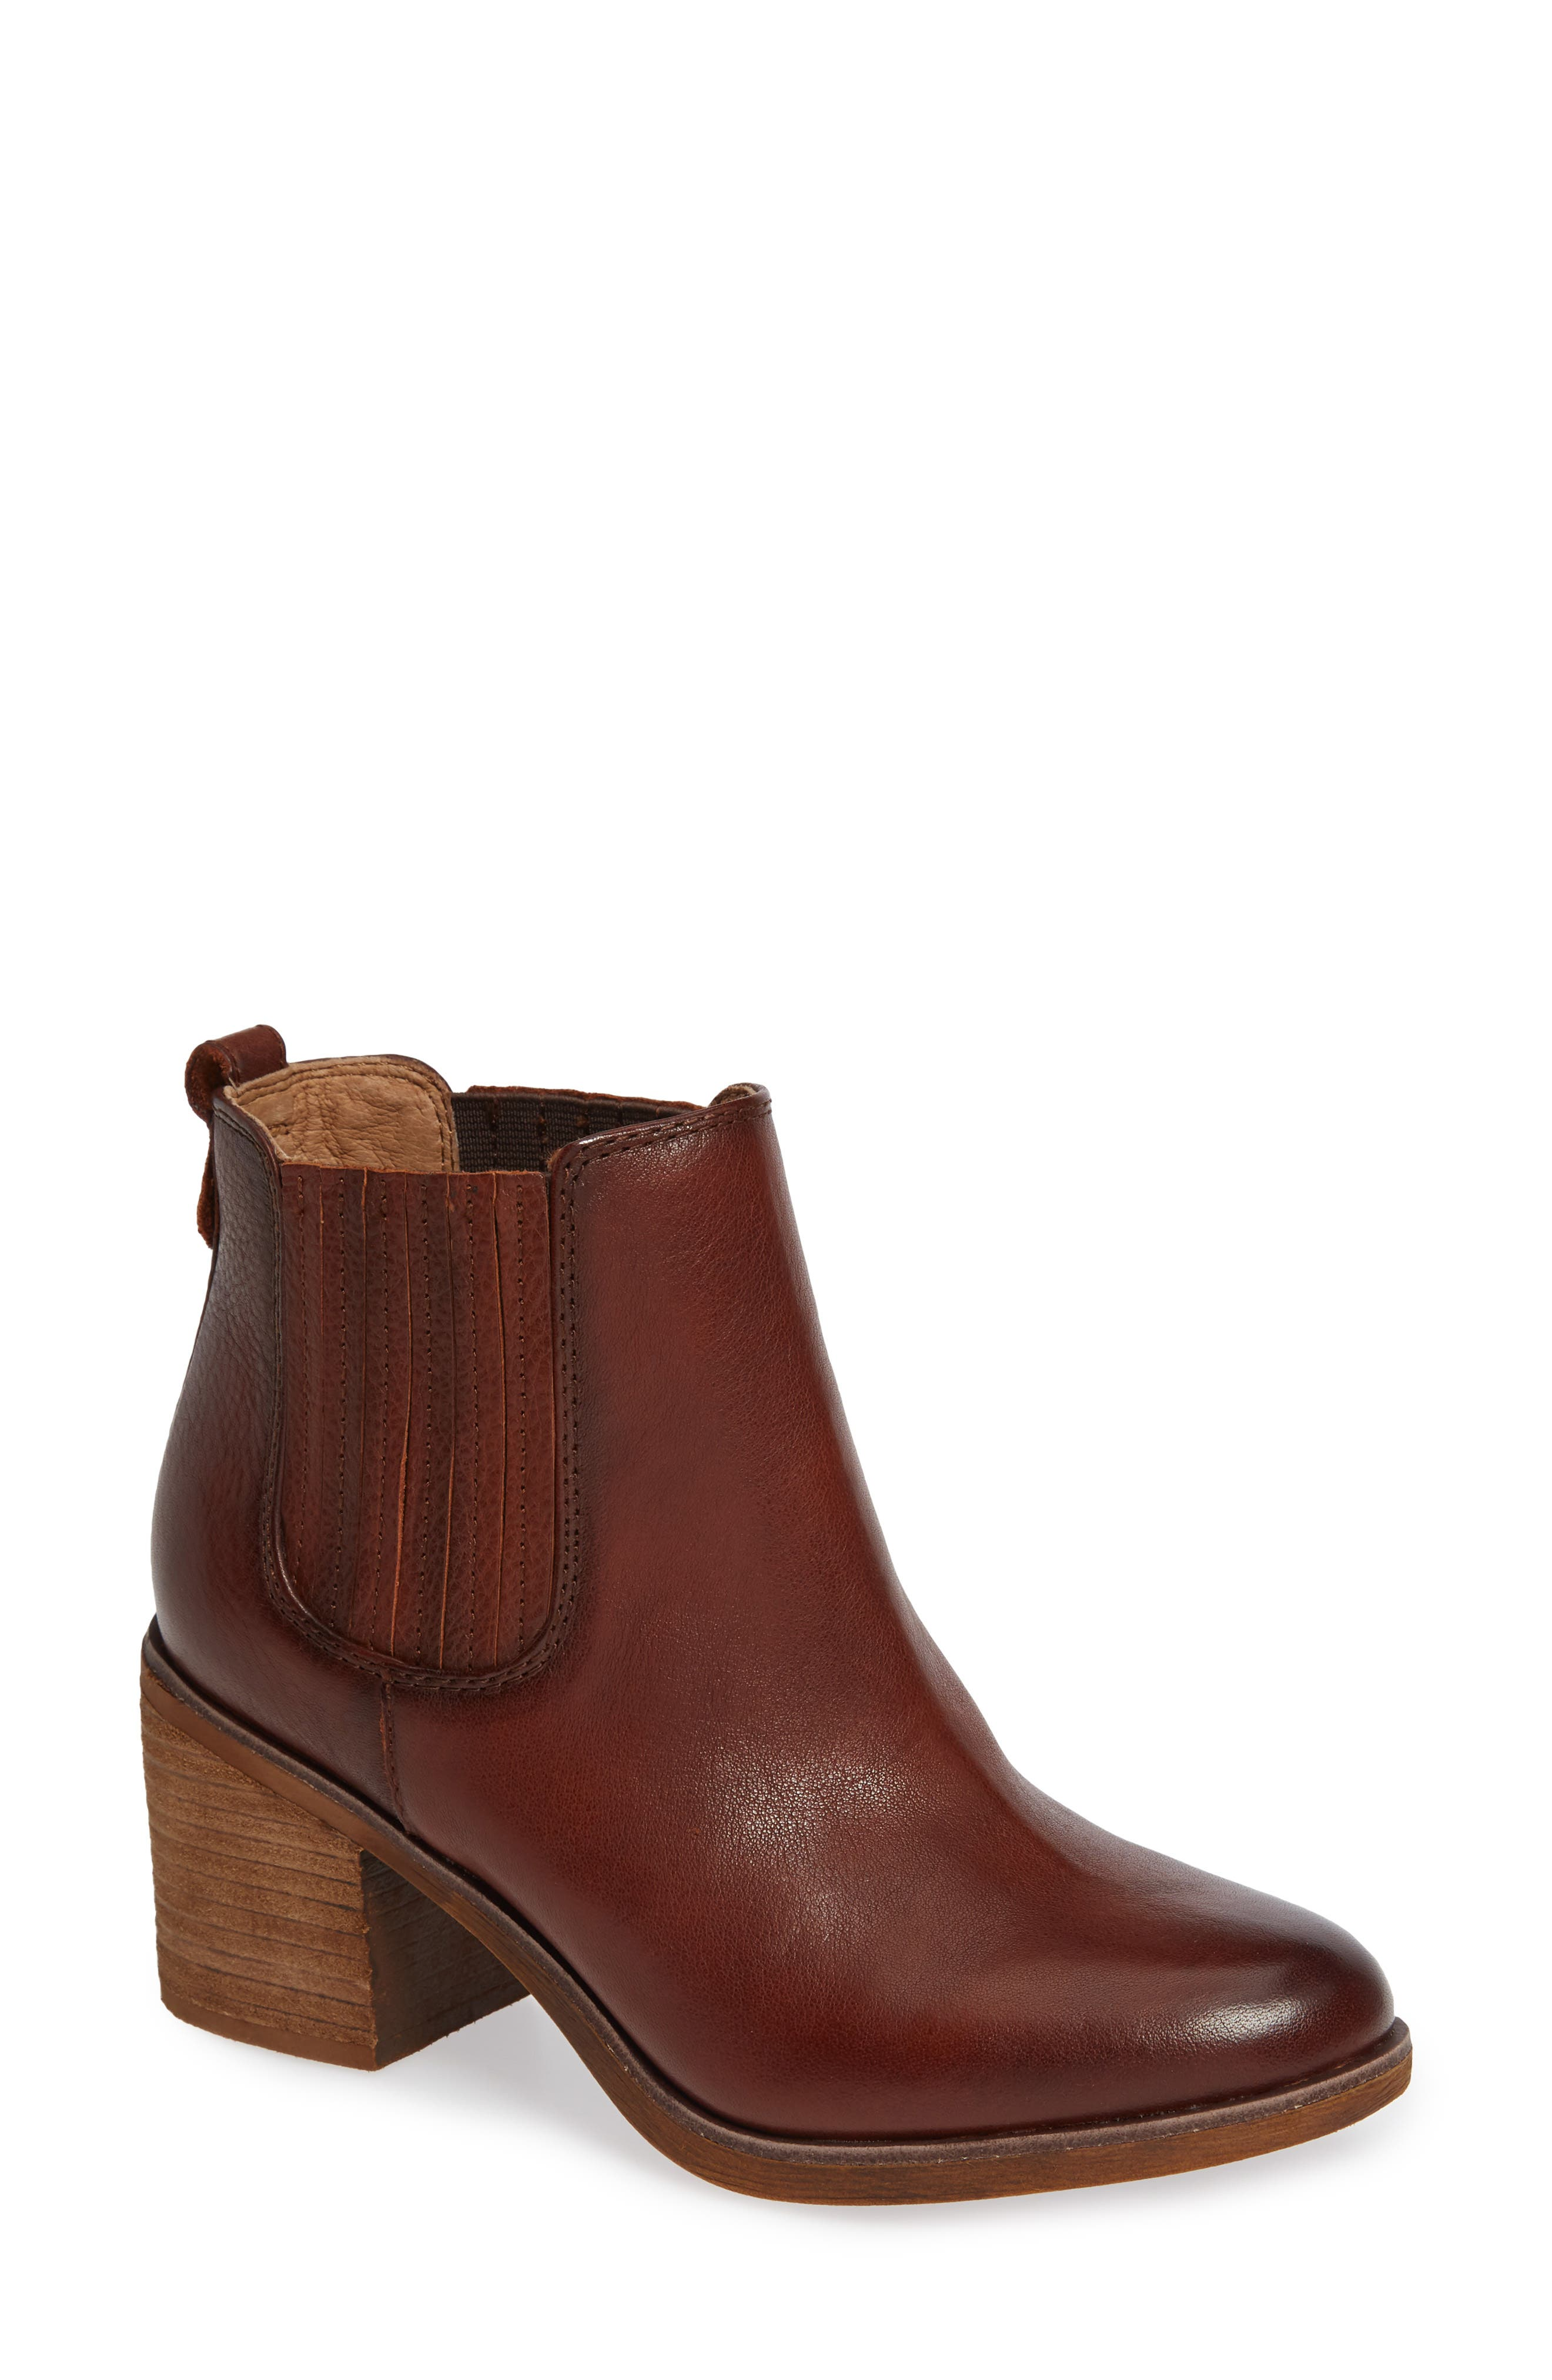 Sadova Chelsea Bootie,                             Main thumbnail 1, color,                             WHISKEY LEATHER